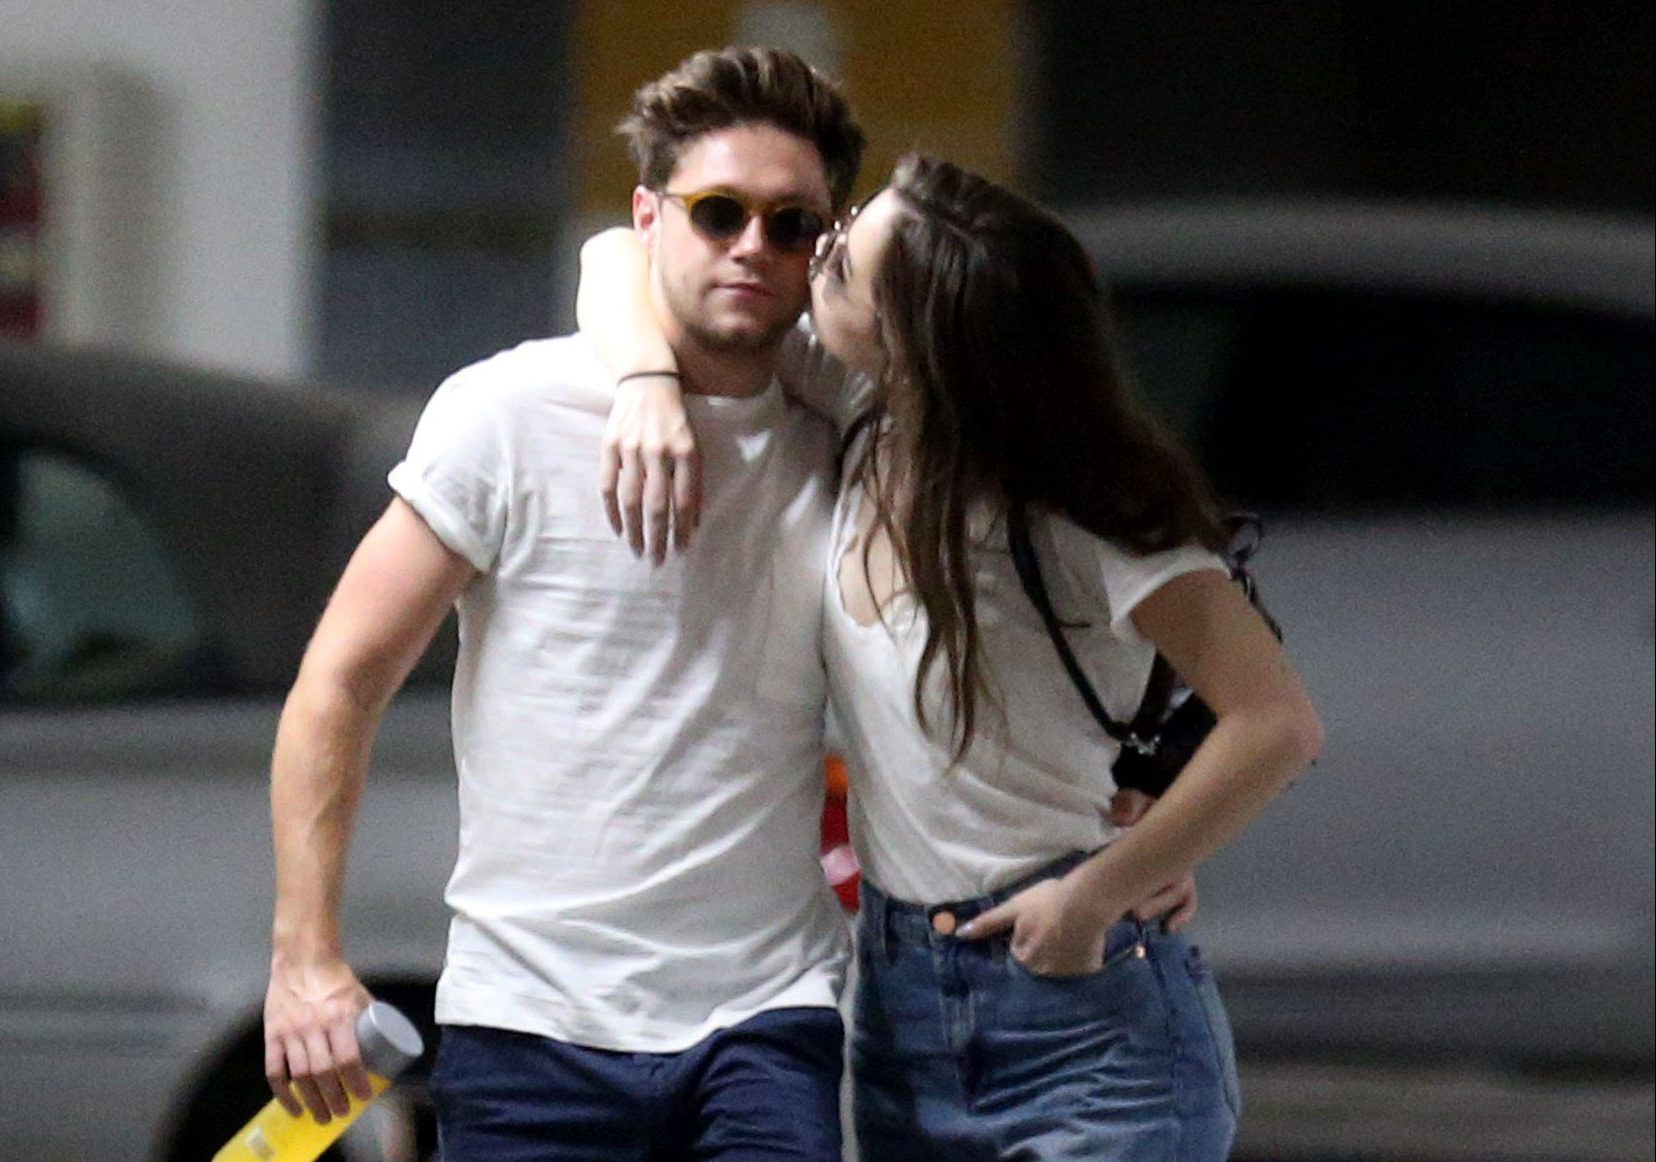 EXCLUSIVE: *PRINT AND ONLINE 250GBP P/PIC, 500GBP SET FEE* Niall Horan kisses Hailee Steinfeld as they head to Target in Los Angles, California. Rumours that the two were a couple surfaced in February when they were spotted at a Backstreet Boys concert together, although they have never confirmed their relationship status publicly. On their shopping trip, however, they were happy to indulge in a public display of affection, openly hugging and kissing as they waited for the elevator. Spending around 15 minutes in the store, Hailee purchased a WarmMist humidifier and carried it back to the car as Niall carried some bottles of water for the pair. The happy couple were also sartorially in sync, both wearing white t-shirts and blue shorts and jeans matched with white trainers. Pictured: Niall Horan,Hailee Steinfeld Ref: SPL5016354 150818 EXCLUSIVE Picture by: Splash News / SplashNews.com *PRINT AND ONLINE 250GBP P/PIC, 500GBP SET FEE* Splash News and Pictures Los Angeles: 310-821-2666 New York: 212-619-2666 London: 0207 644 7656 Milan: +39 02 4399 8577 Sydney: +61 02 9240 7700 photodesk@splashnews.com World Rights